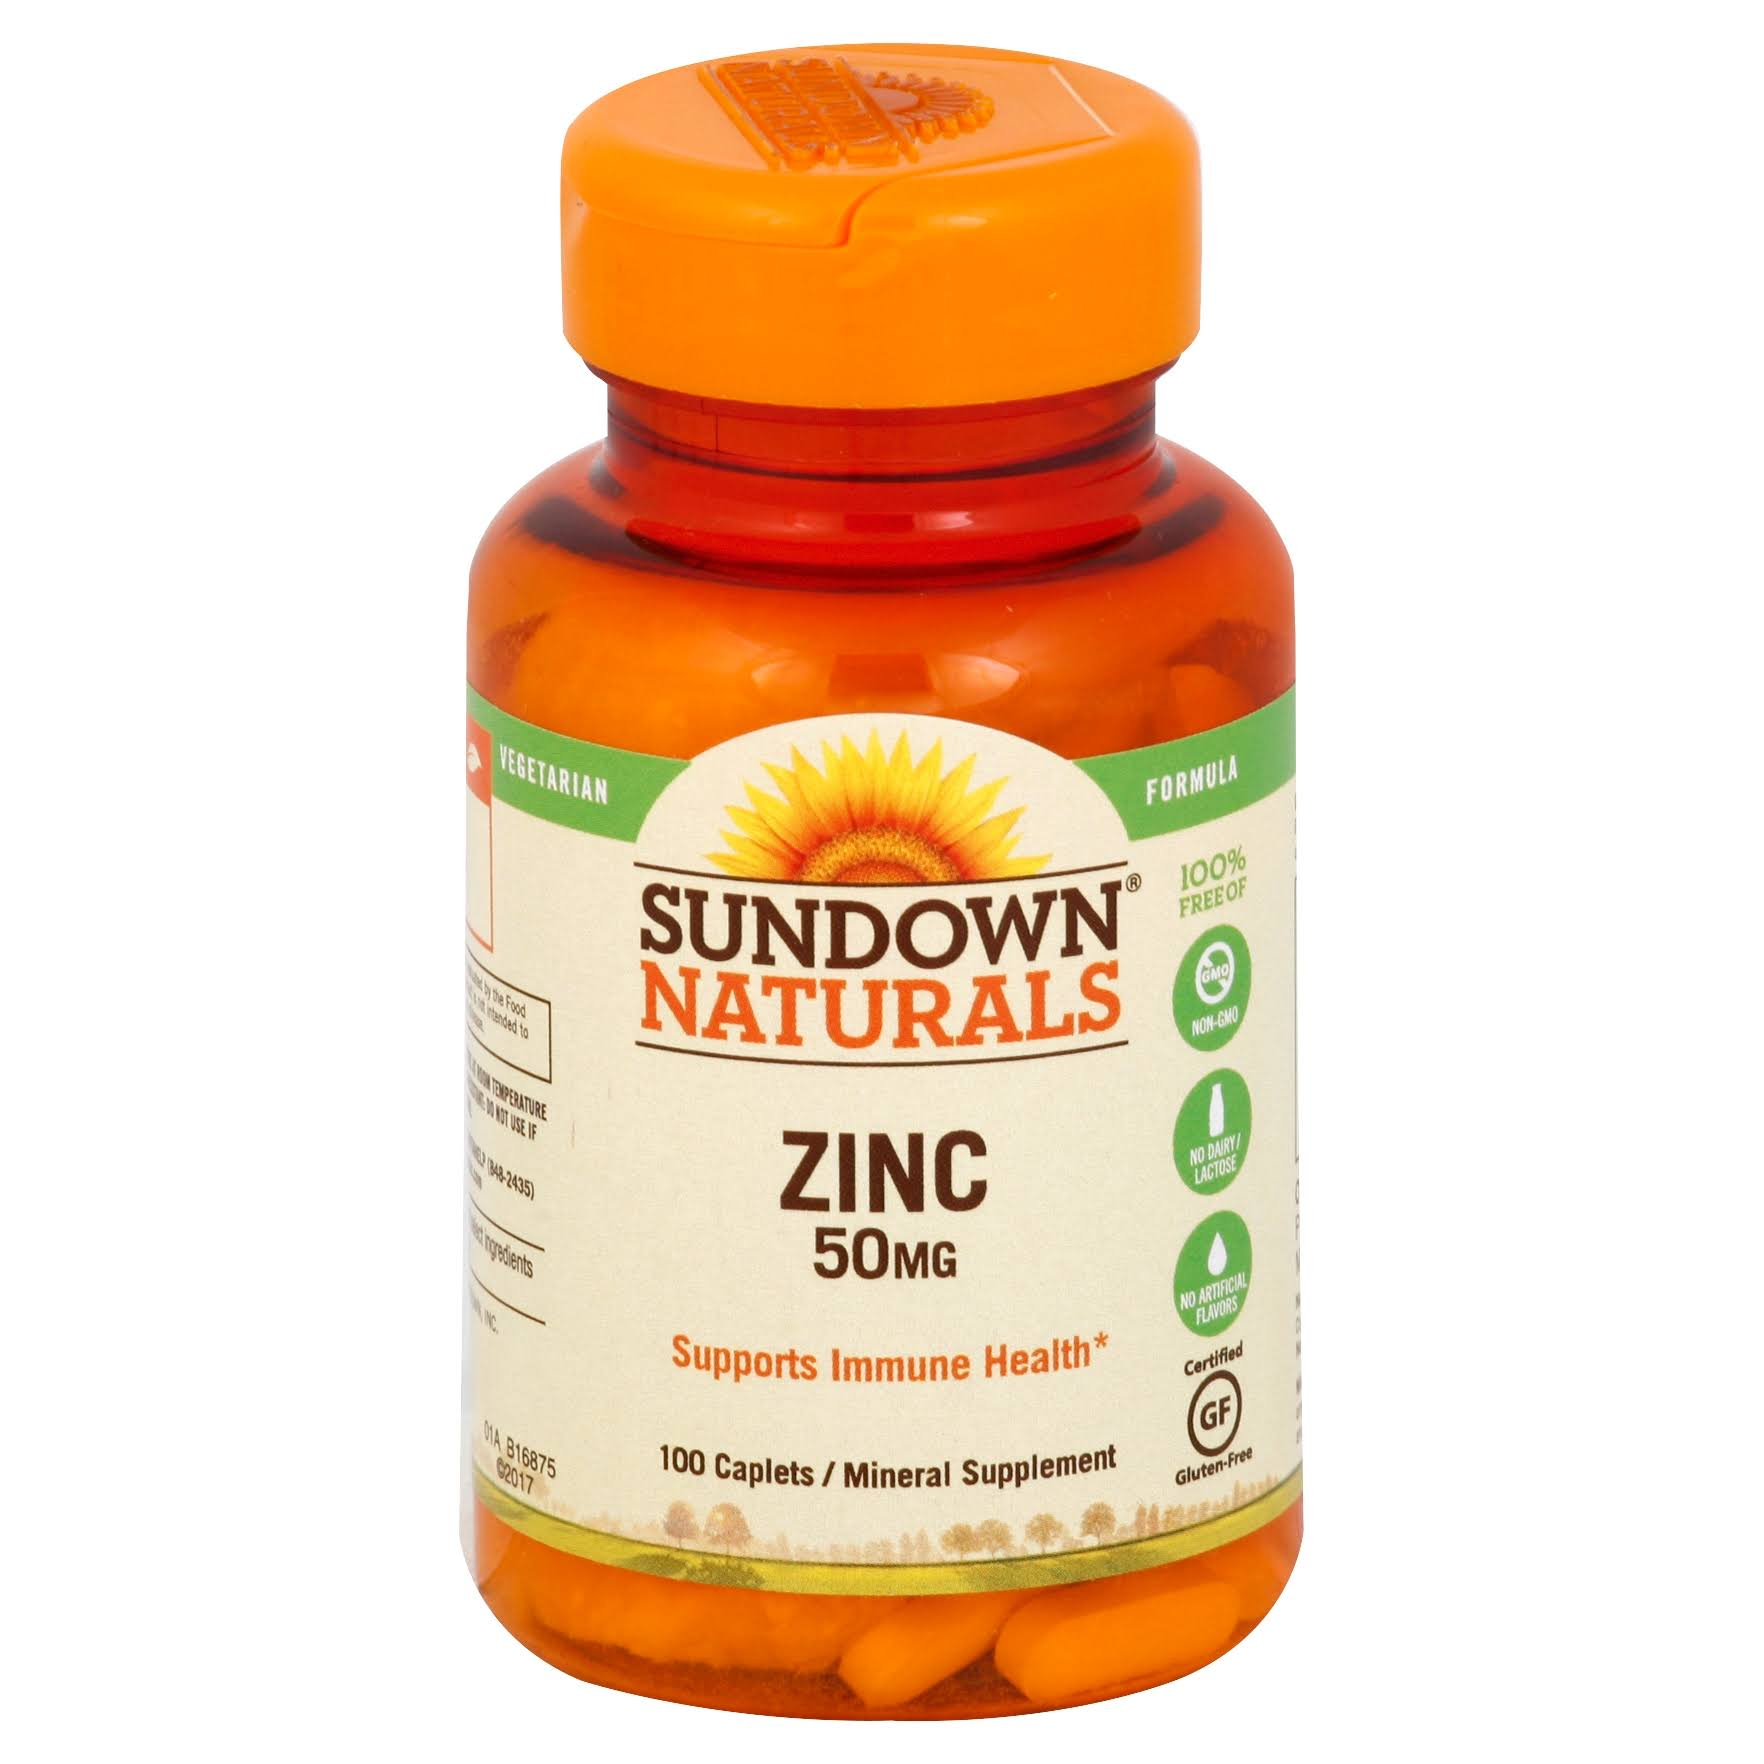 Sundown Naturals High Potency Zinc - 50 mg, 100 tablets